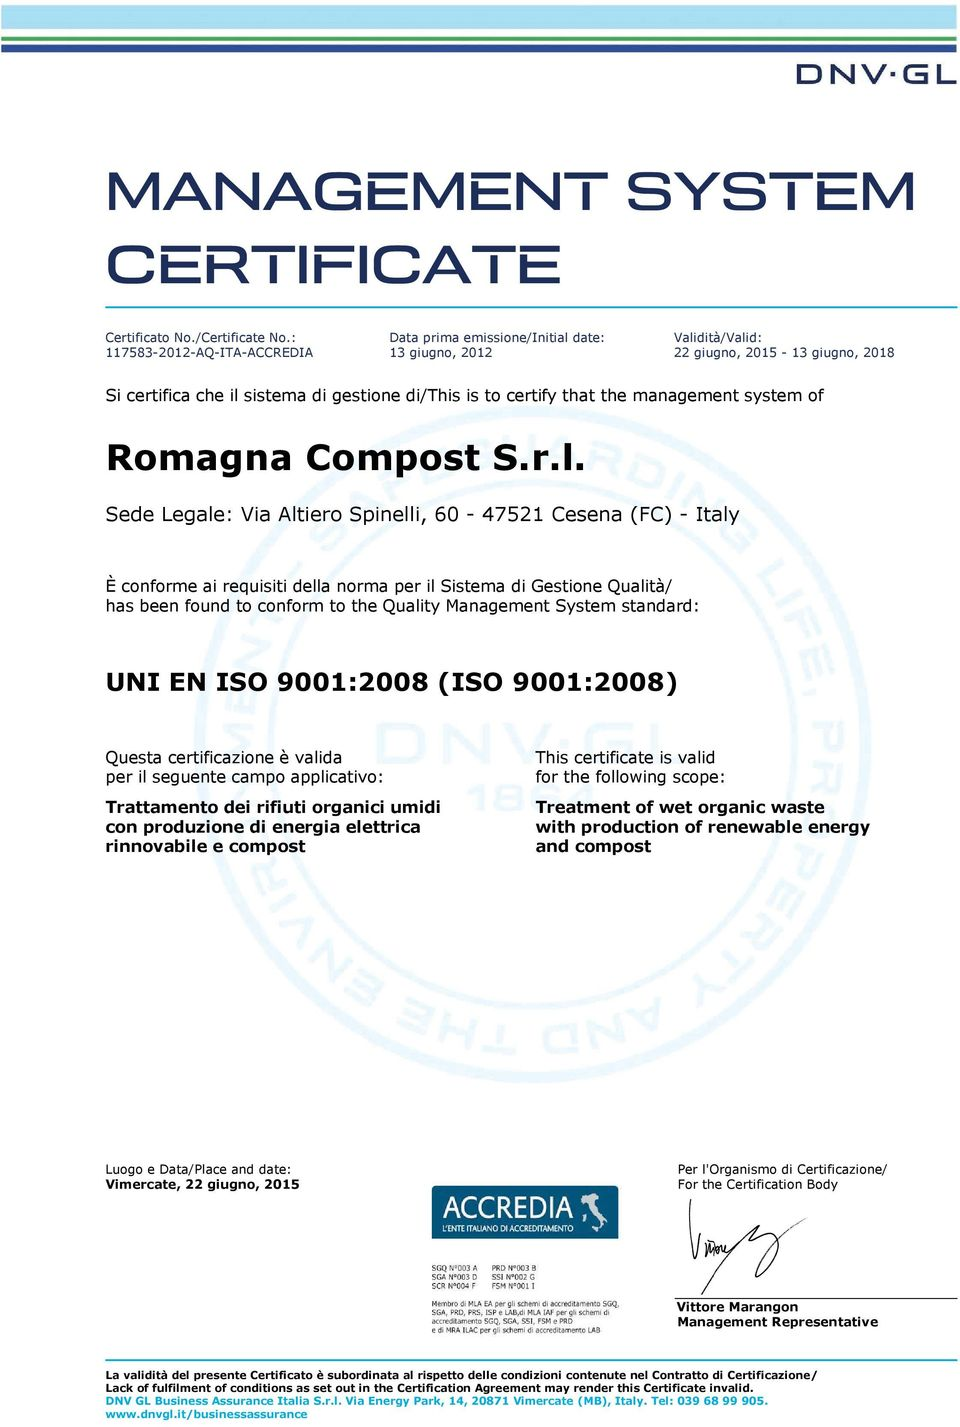 has been found to conform to the Quality Management System standard: UNI EN ISO 9001:2008 (ISO 9001:2008) Trattamento dei rifiuti